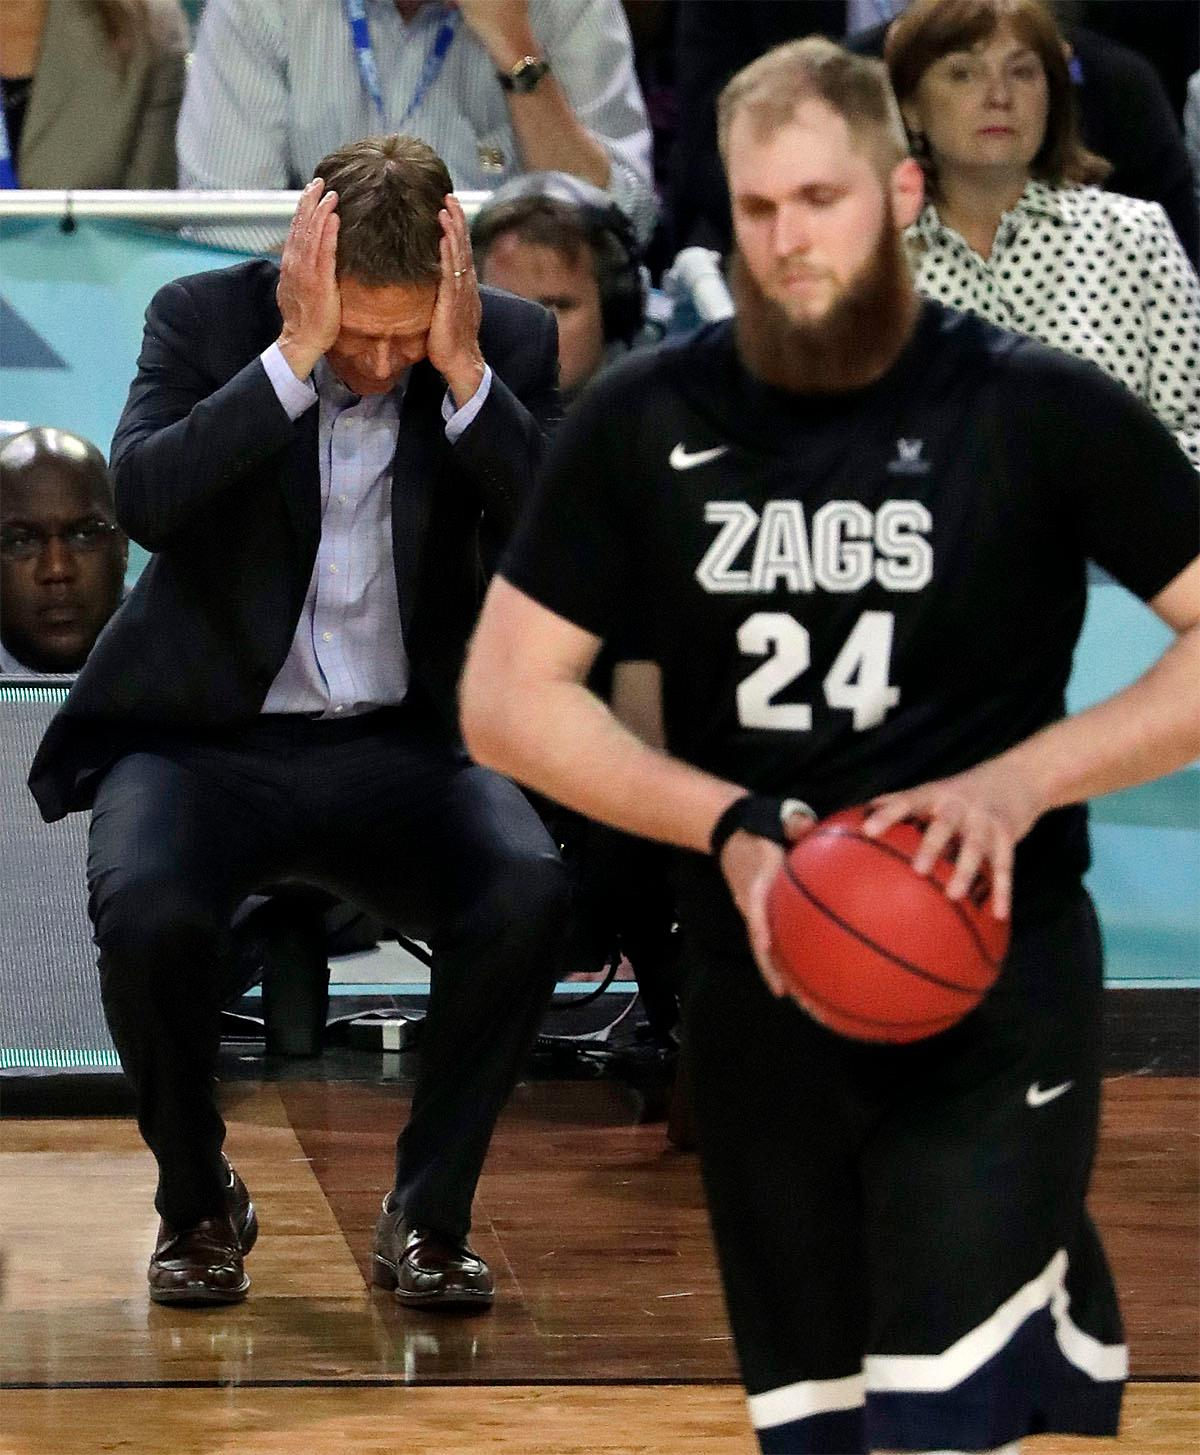 Gonzaga head coach Mark Few reacts as Przemek Karnowski (24) walks down on the court during the second half in the finals of the Final Four NCAA college basketball tournament, Monday, April 3, 2017, in Glendale, Ariz. (AP Photo/Matt York)